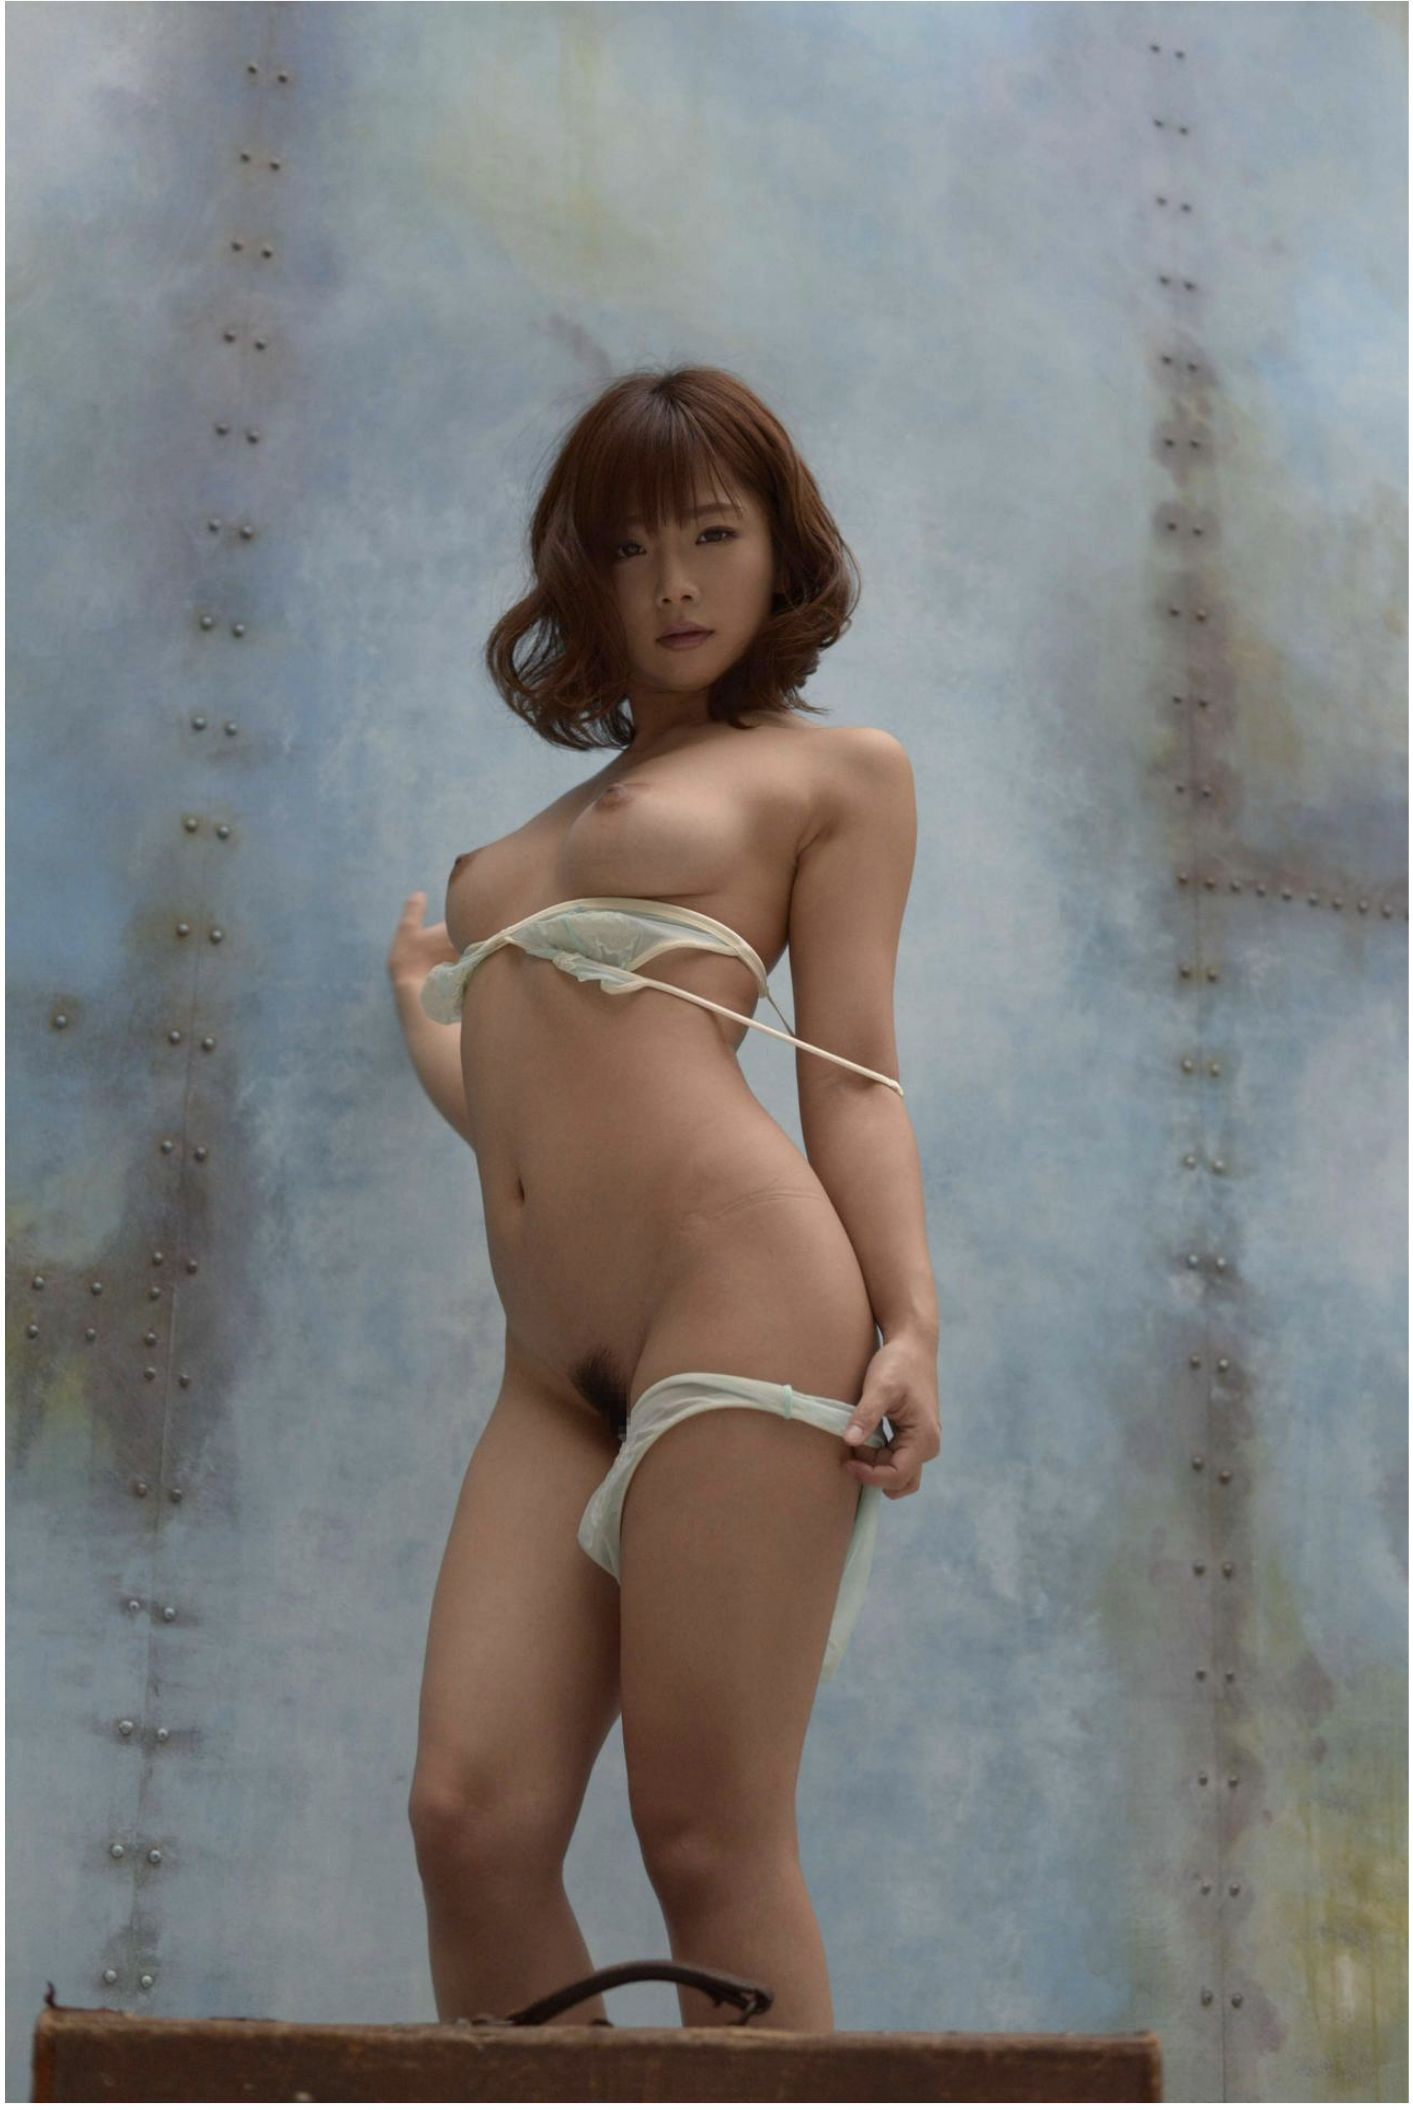 SOFT ON DEMAND GRAVURE COLLECTION 紗倉まな04 photo 100